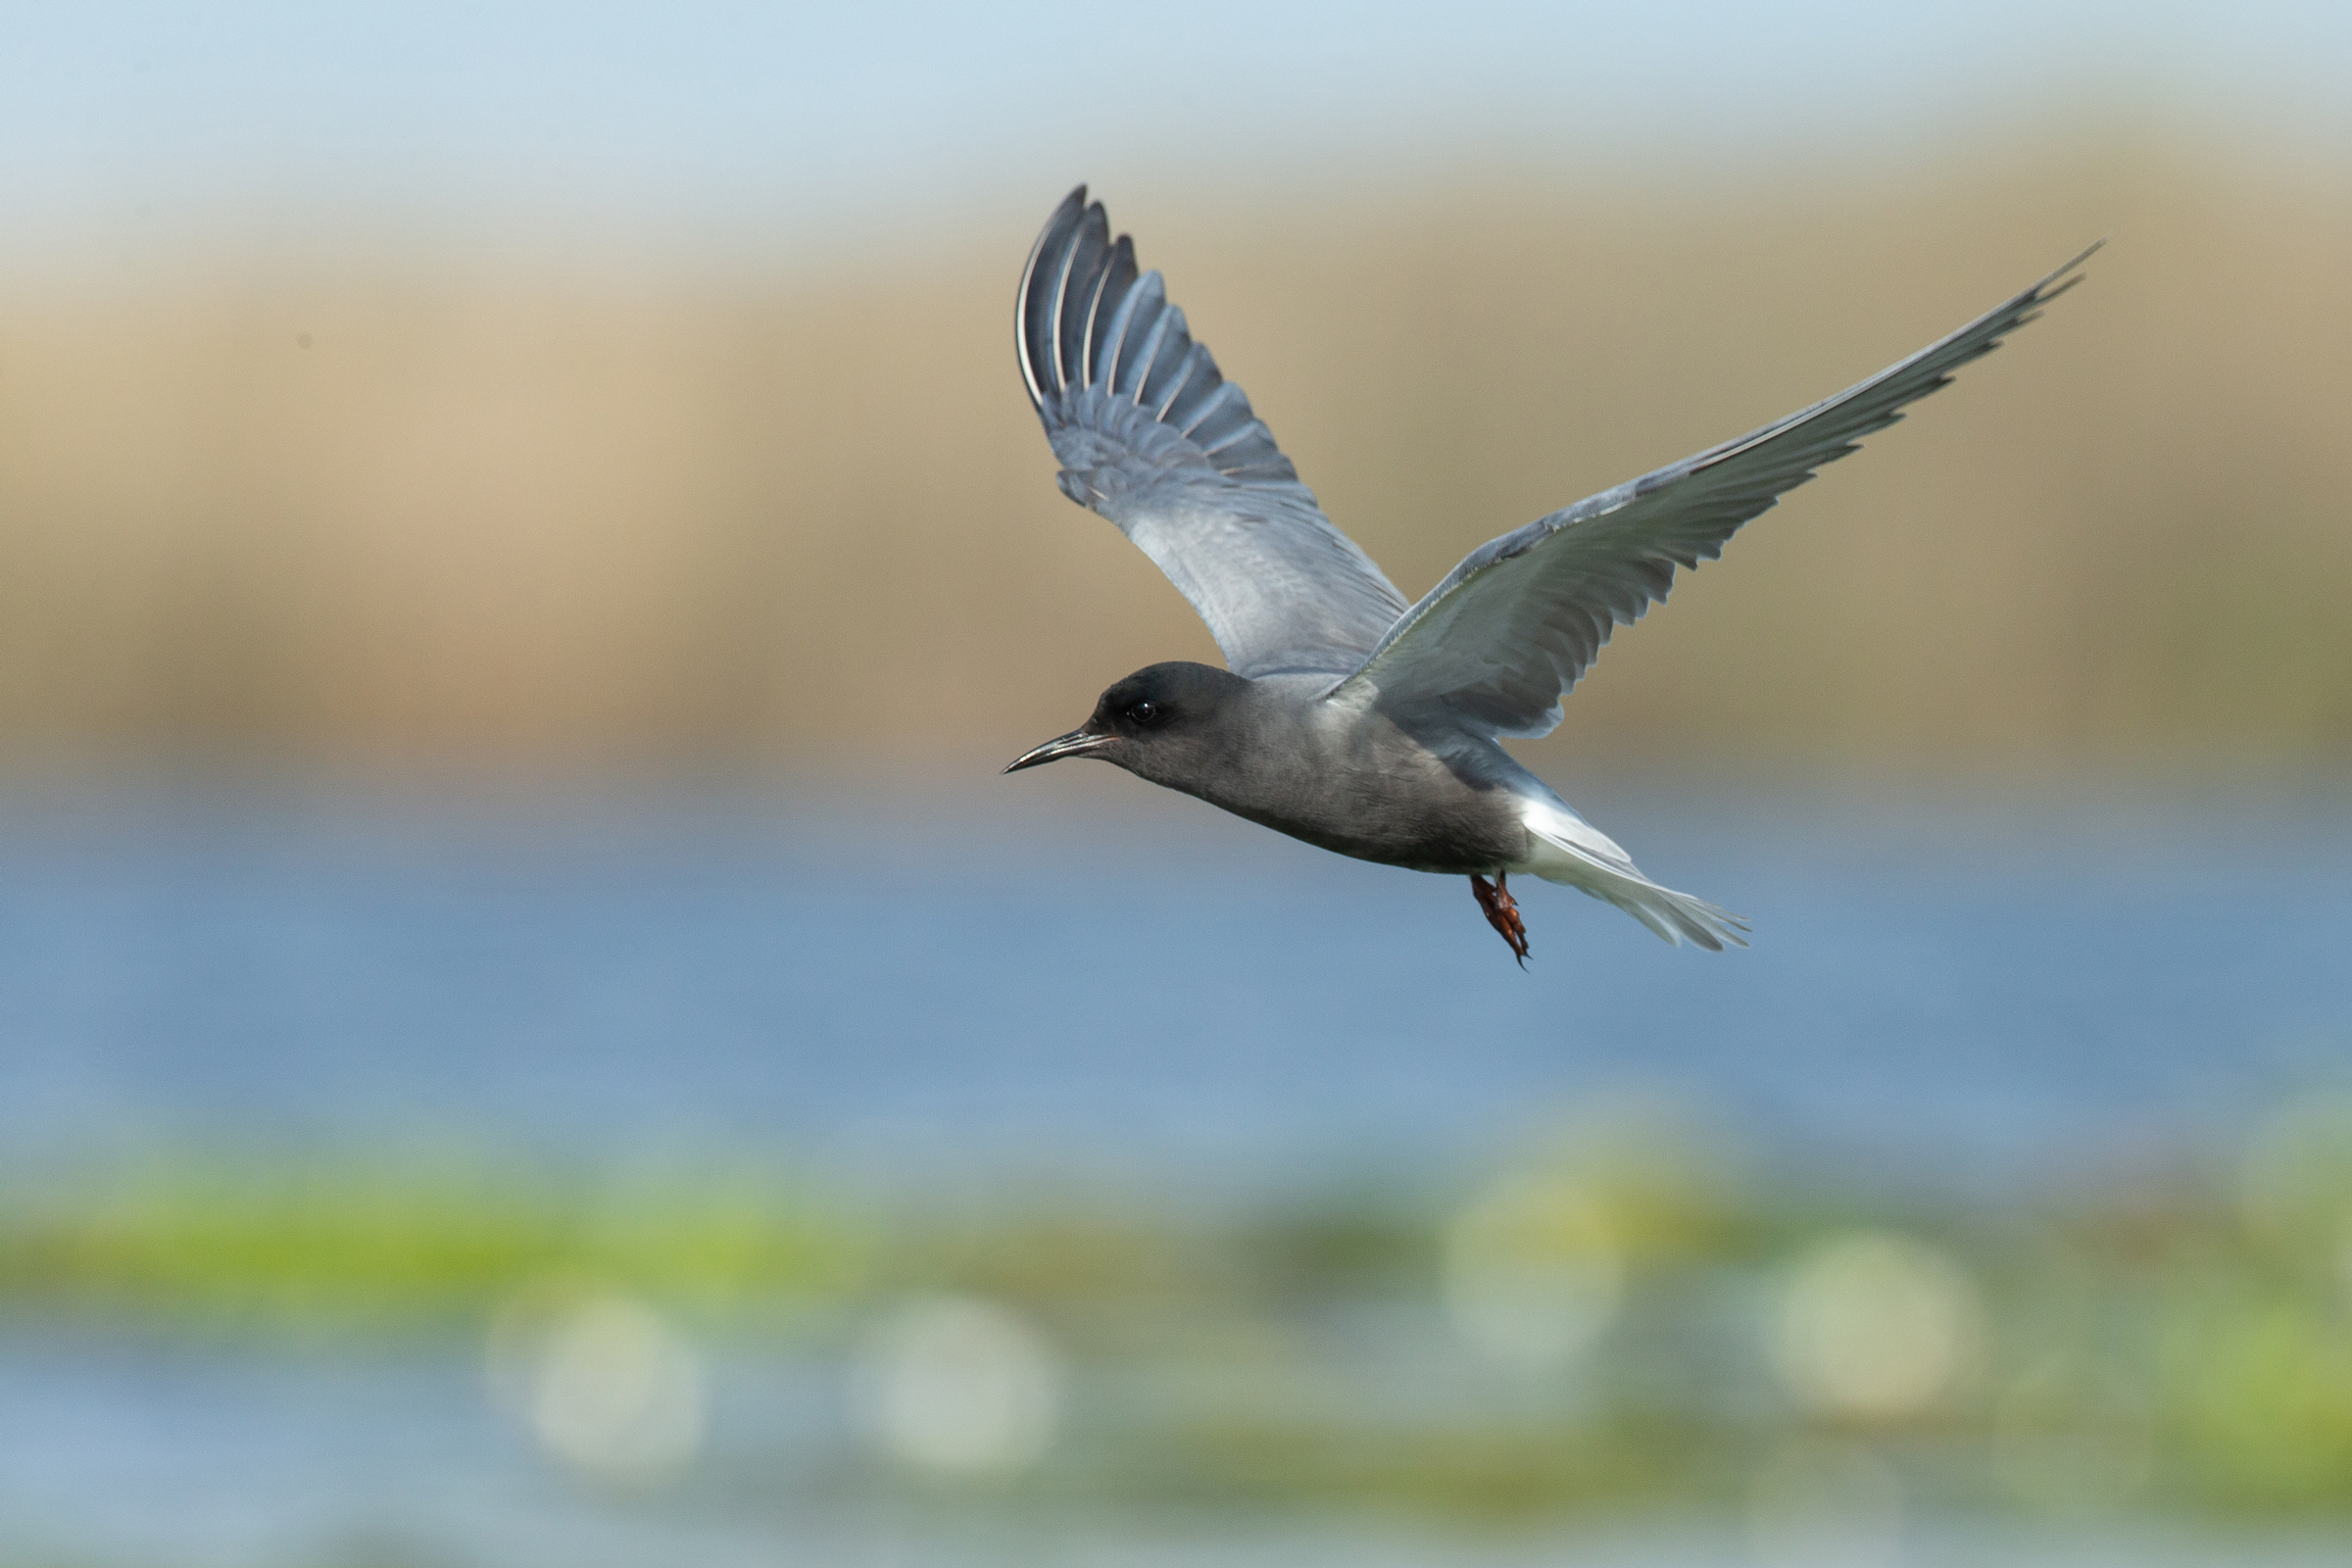 Black Tern over its lily pad colony